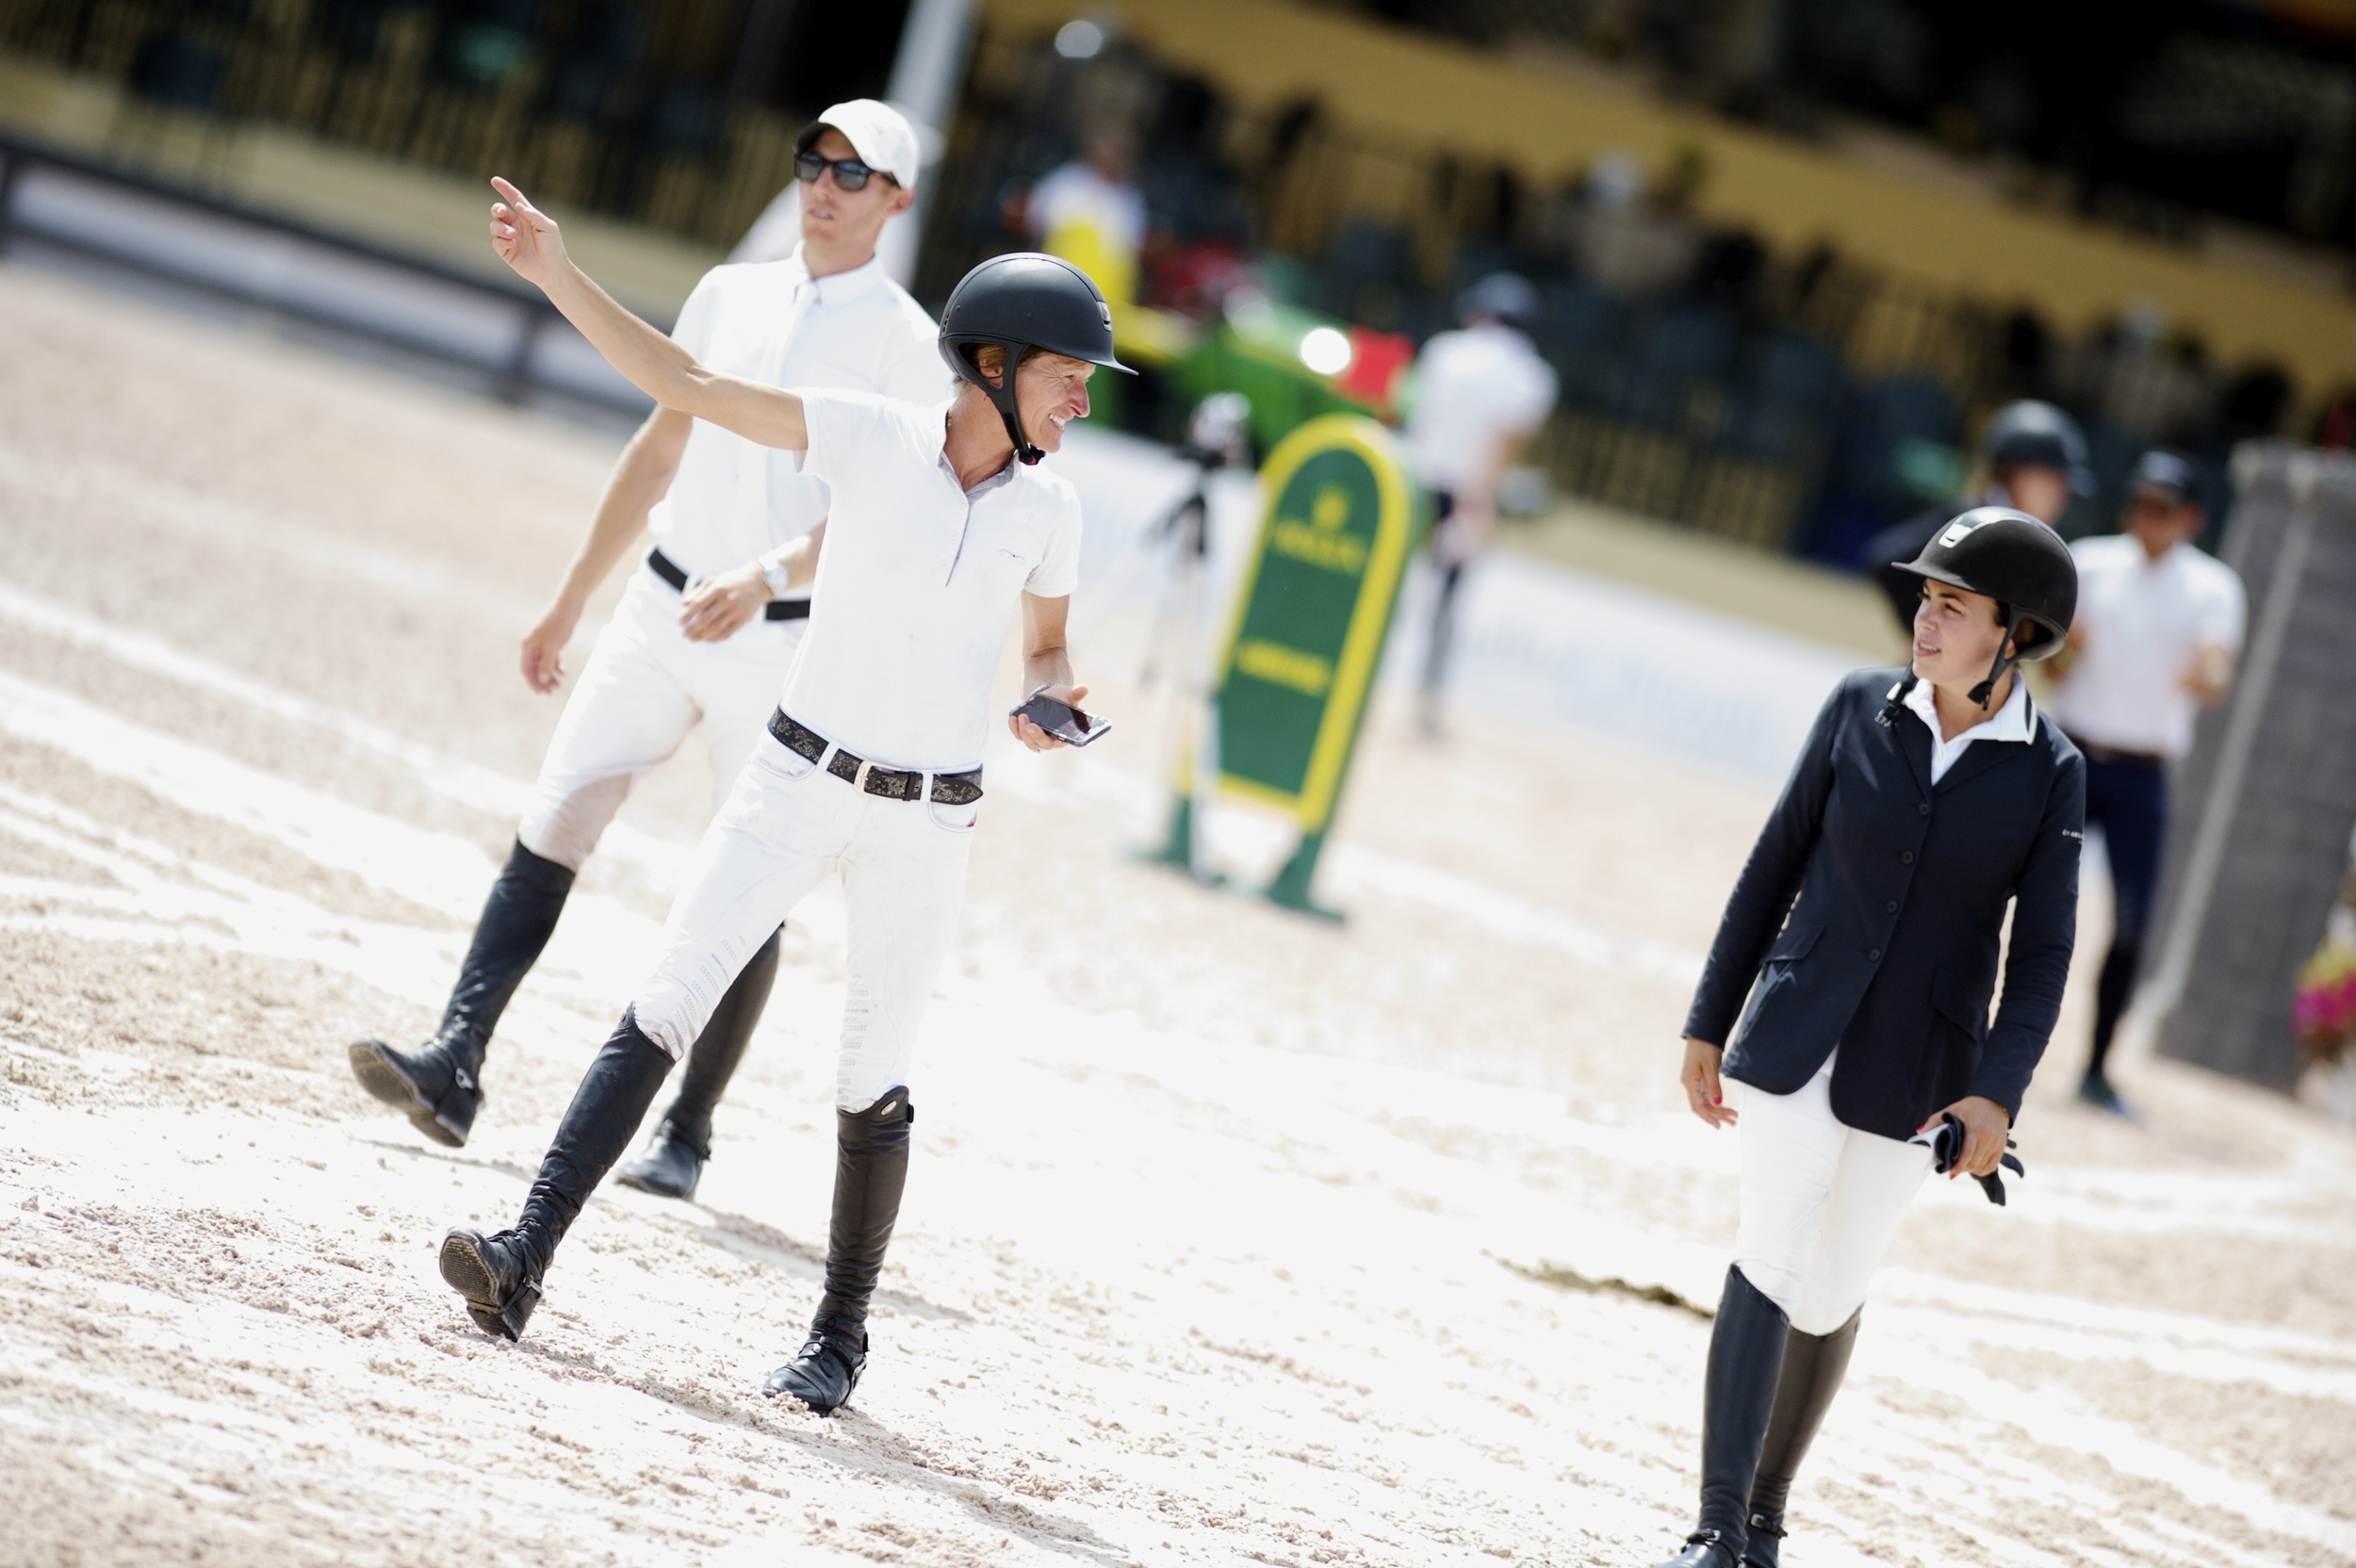 USA's Molly Ashe and Brianne Goutal discuss on course